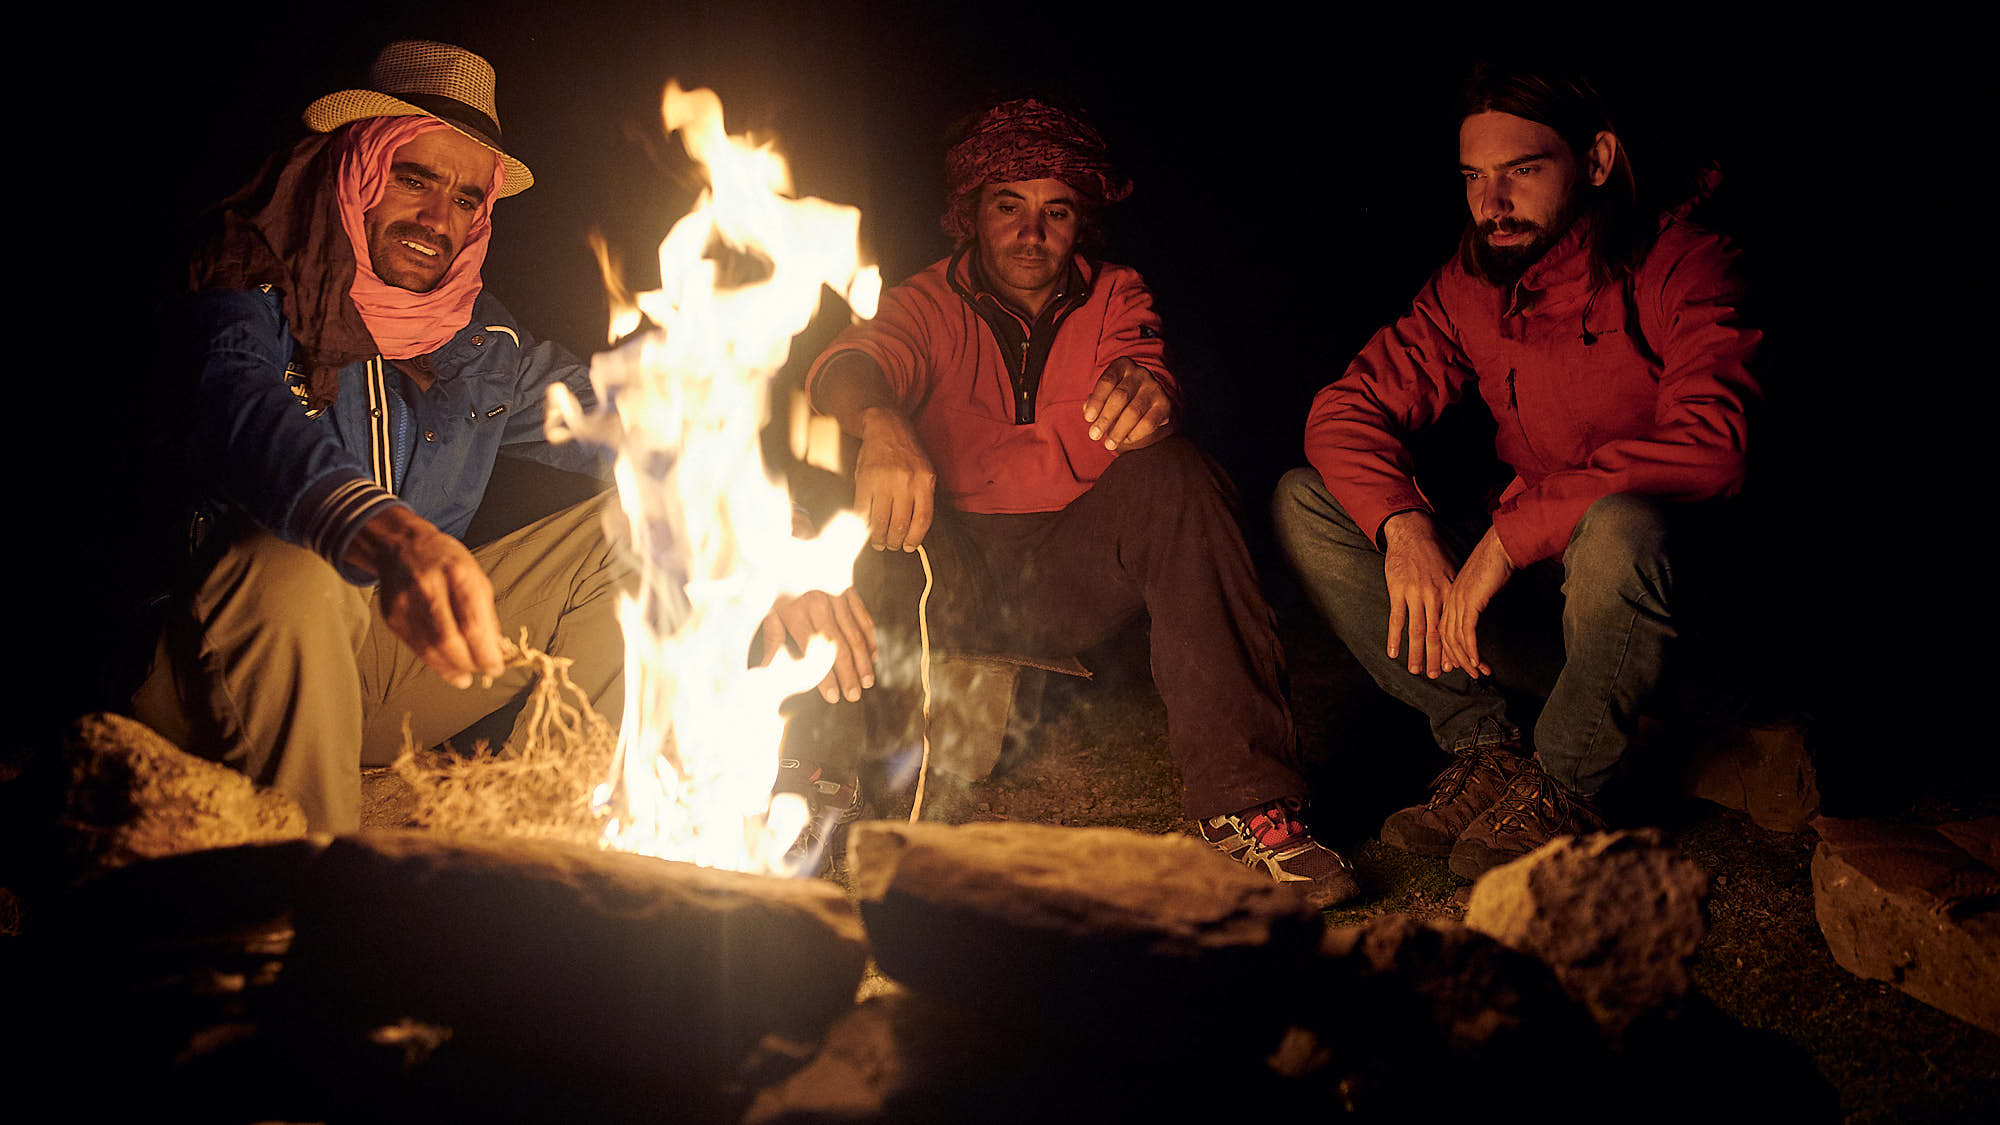 Berber guides and tourist sit by a campfire in Morocco's High Atlas